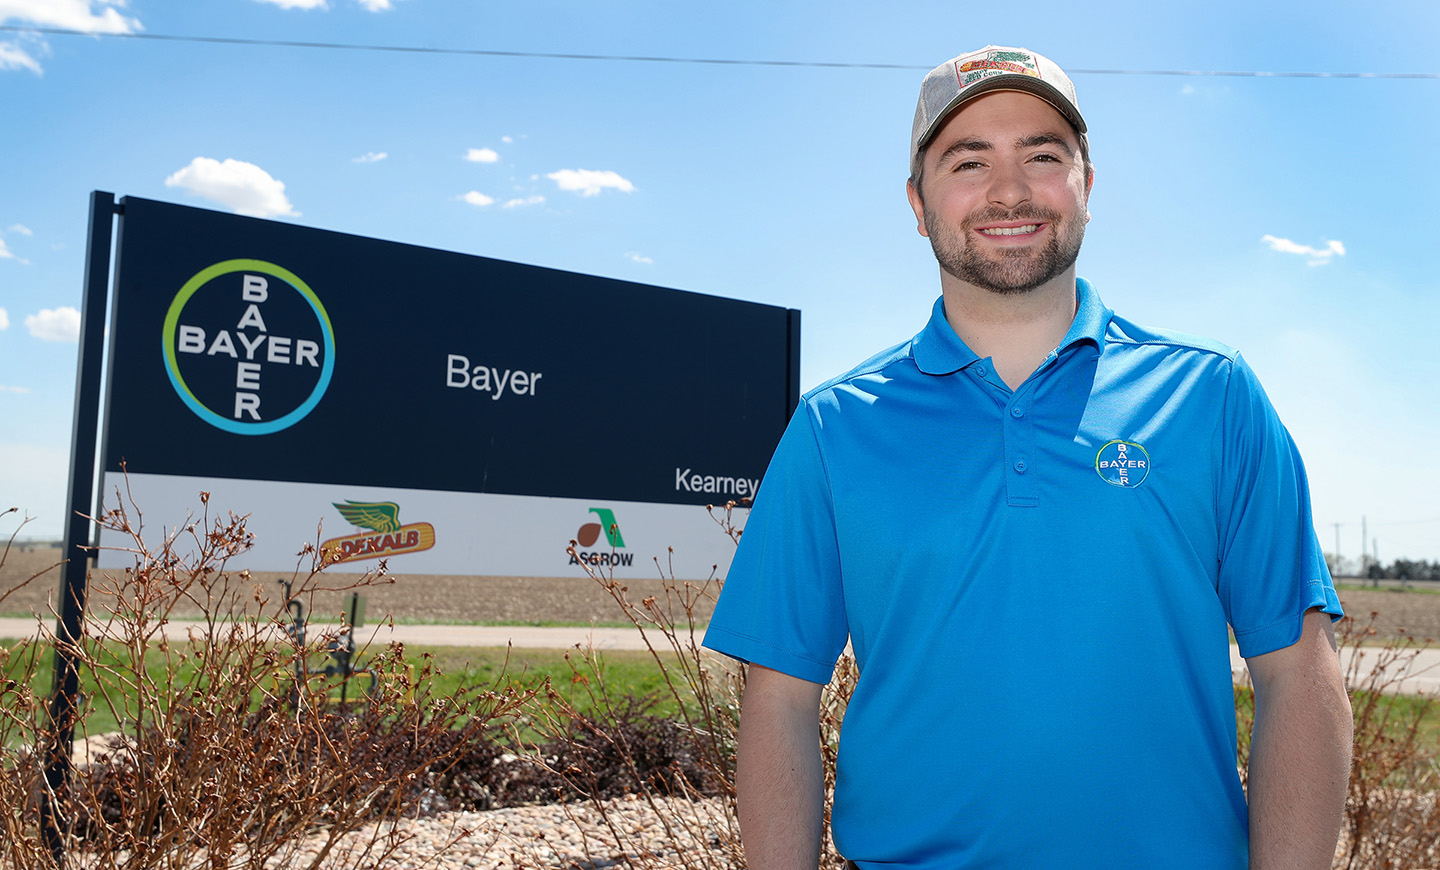 Trey Janicek graduated from UNK last week with a bachelor's degree in agribusiness. He'll move to Hawaii later this month to work as a seed production associate for Bayer Crop Science.